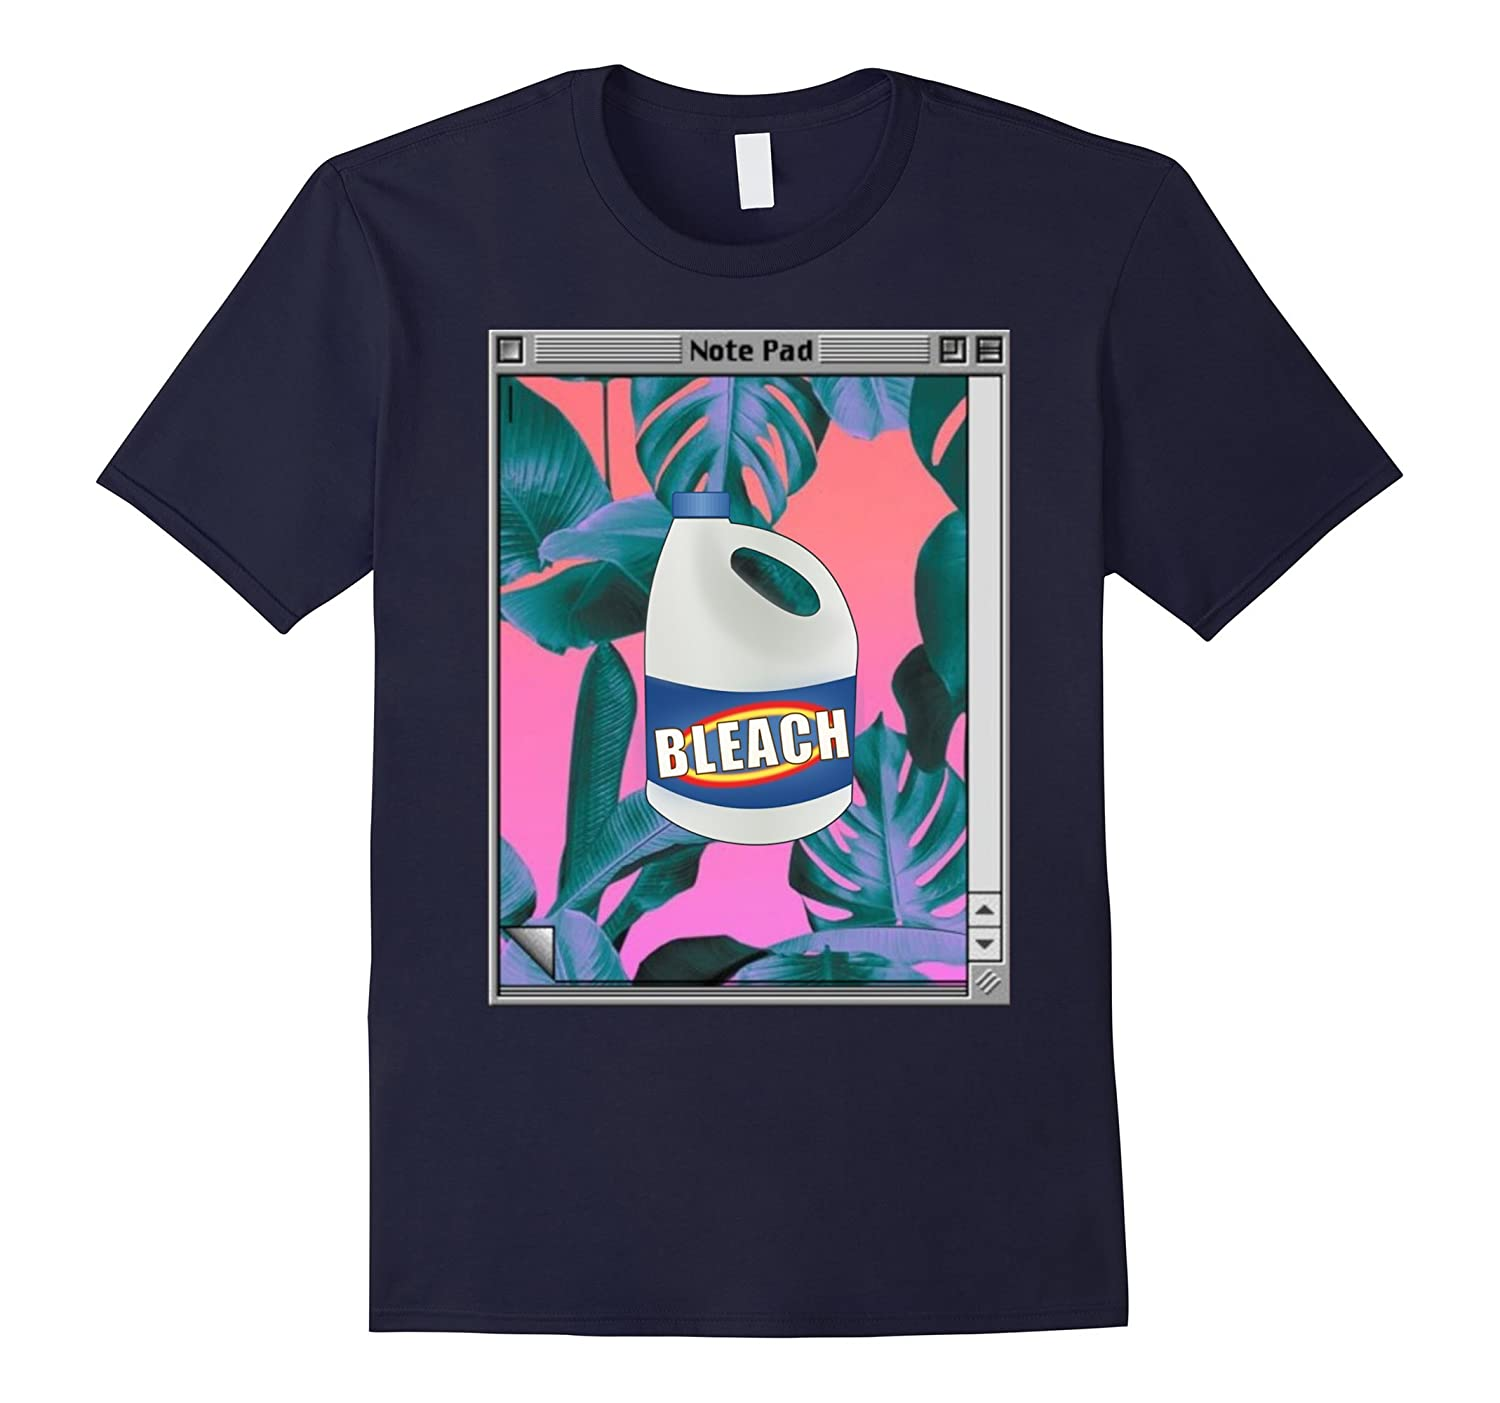 Vaporwave Aesthetic Bleach T-Shirt-BN